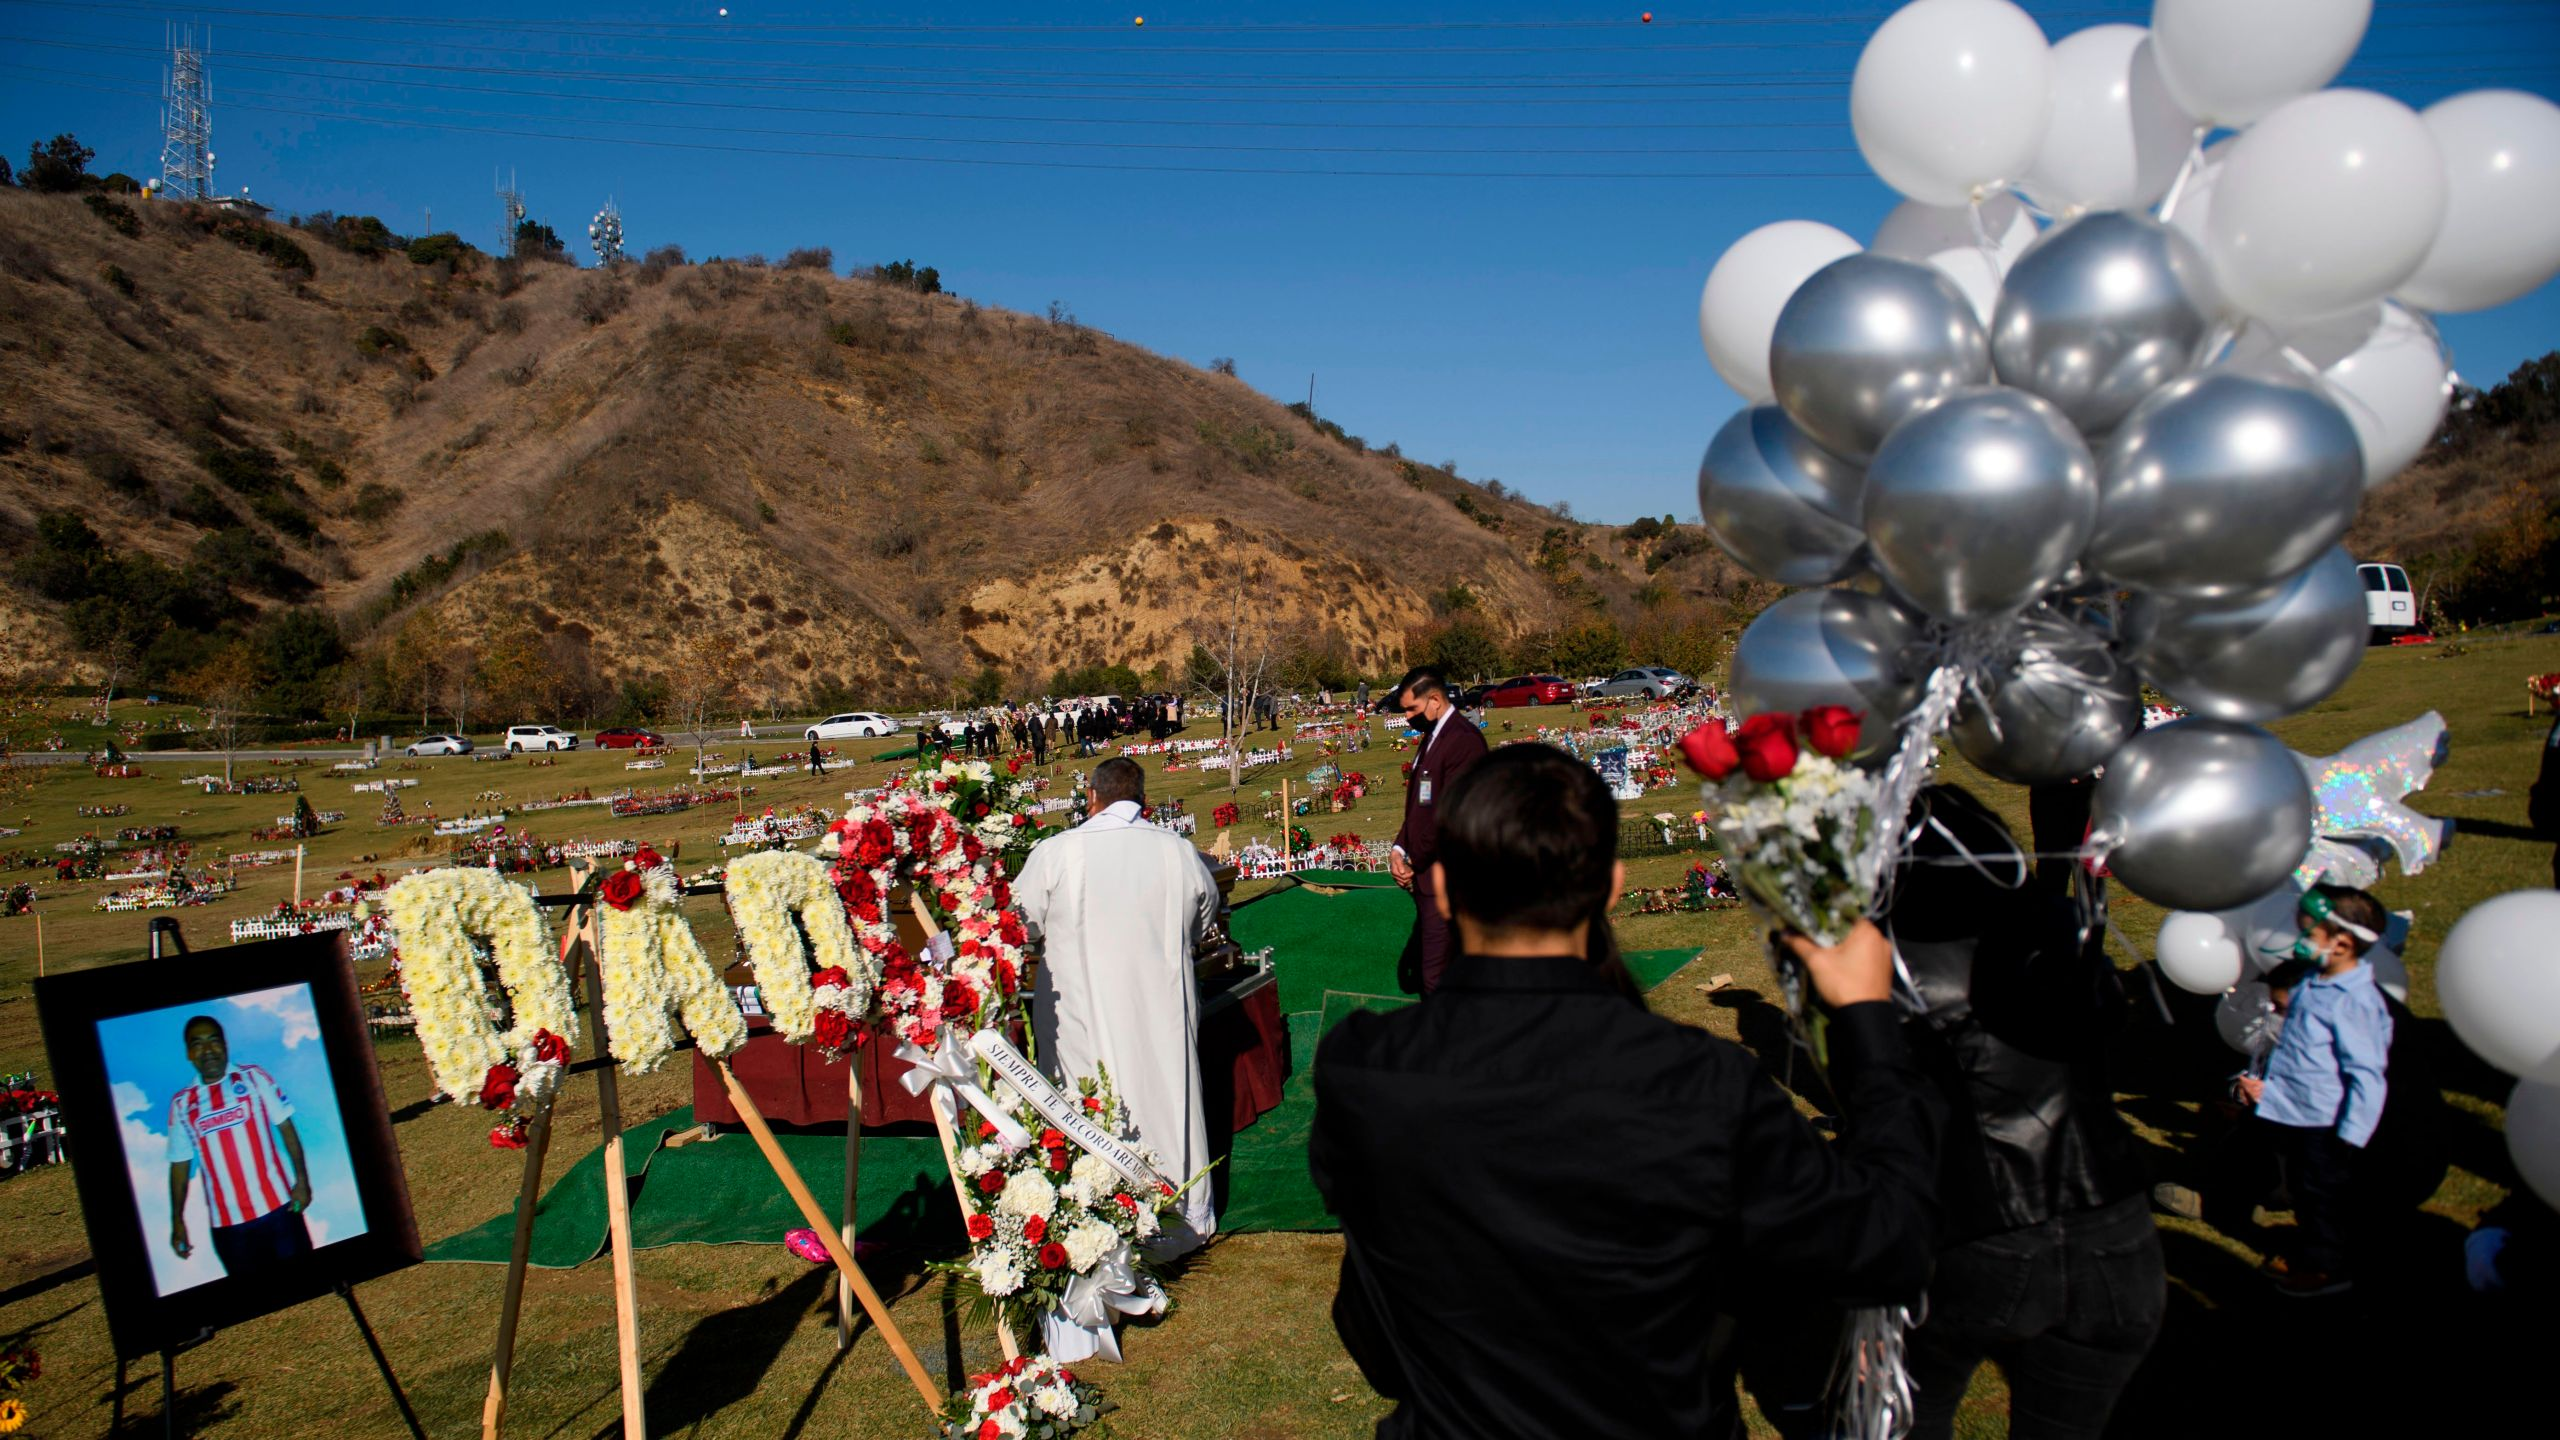 Family members mourn during a burial service for Gilberto Arreguin Camacho, 58, following his death due to COVID-19, at a cemetery on New Year's Eve, Dec. 31, 2020 in Whittier. (PATRICK T. FALLON/AFP via Getty Images)